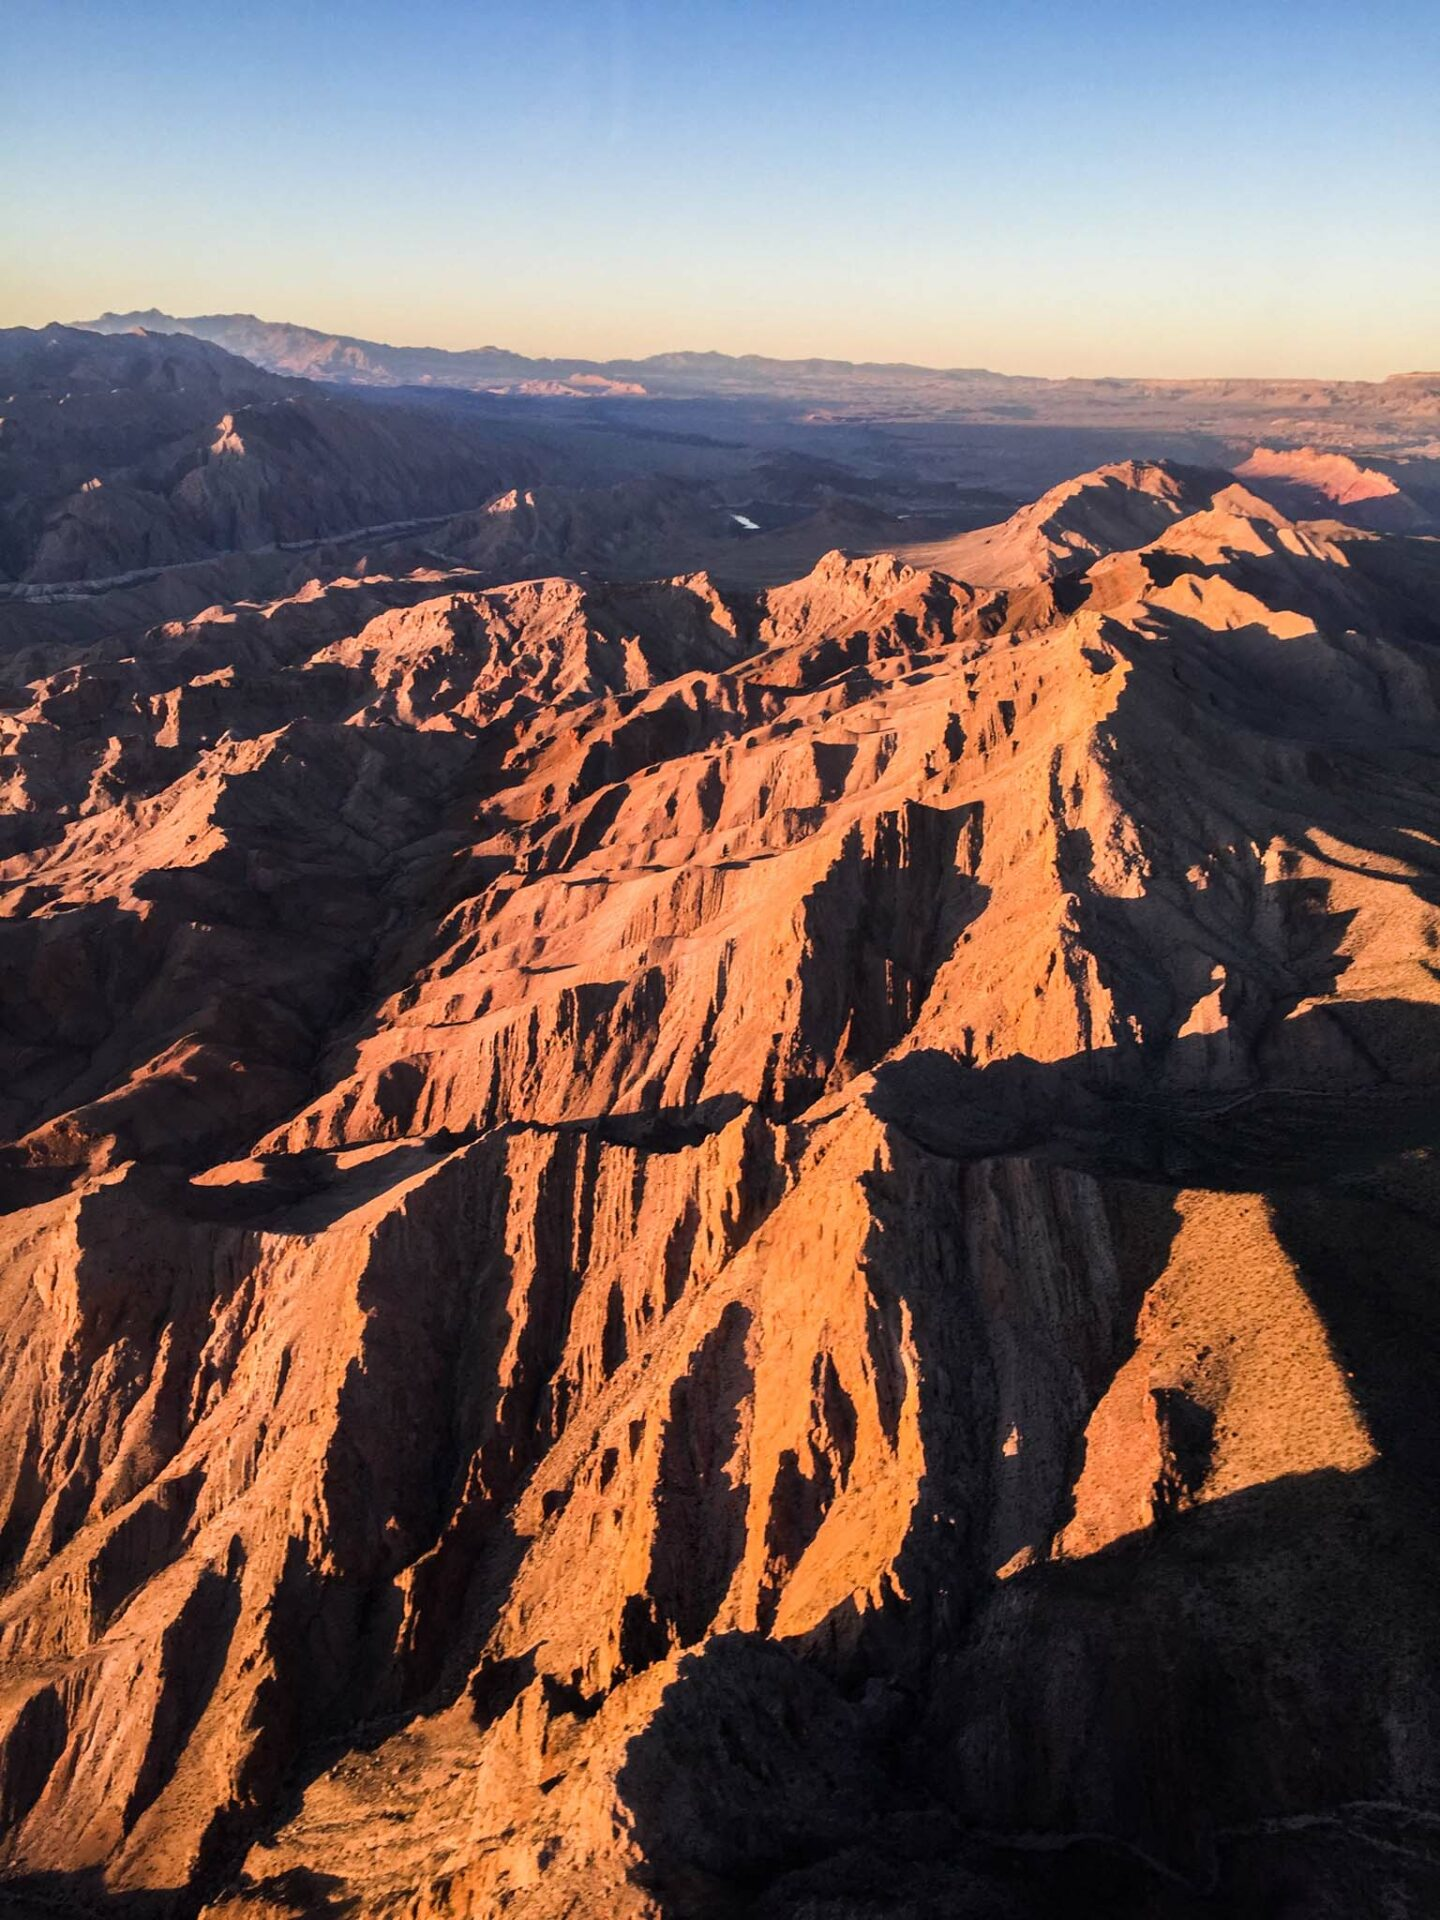 It's just a short drive from Las Vegas to parts of the Grand Canyon. You can take a Helicopter ride for the best views.